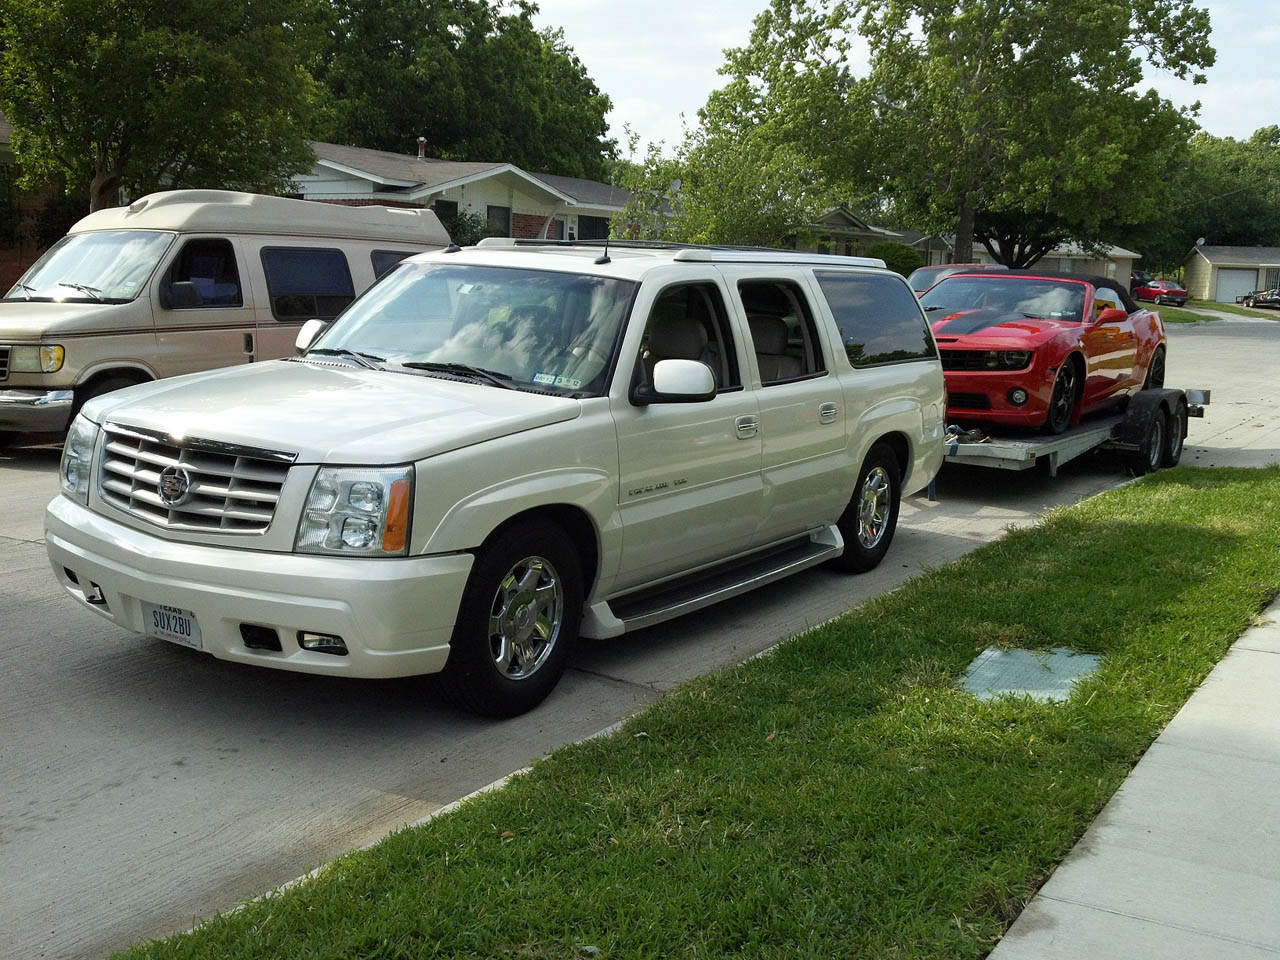 Cadillac cadillac escalade weight : 2003 Cadillac Escalade ESV 1/4 mile Drag Racing timeslip specs 0 ...